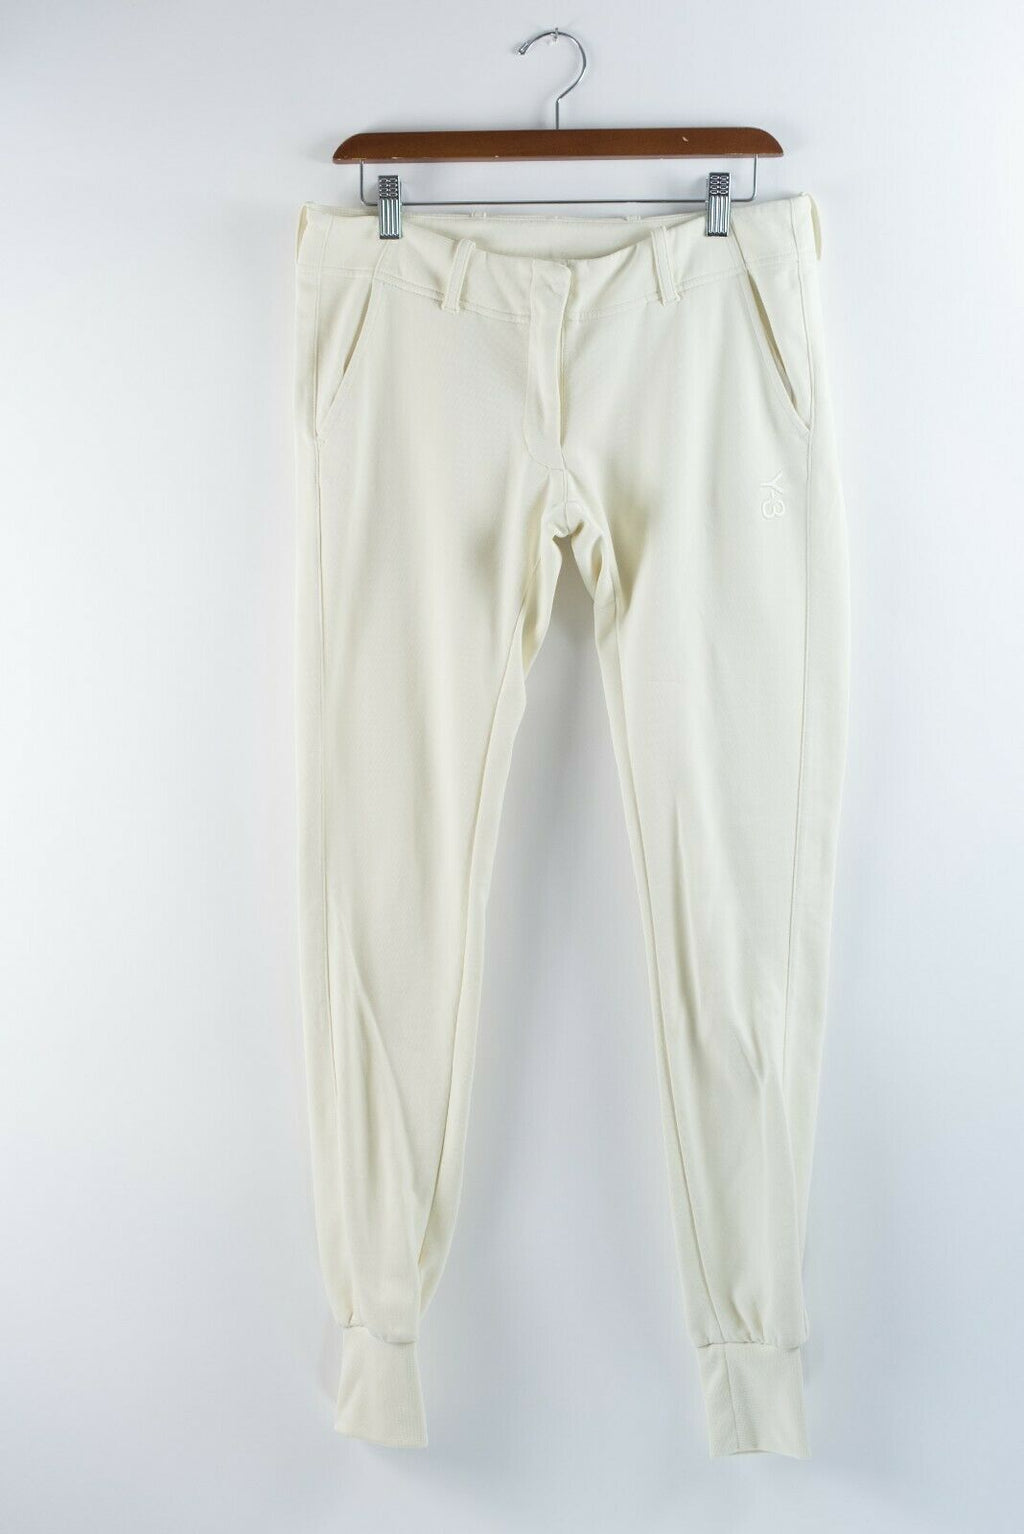 Y-3 Adidas Yohji Yamamoto Womens Small Cream Cuffed Loop Sweat Pants Joggers